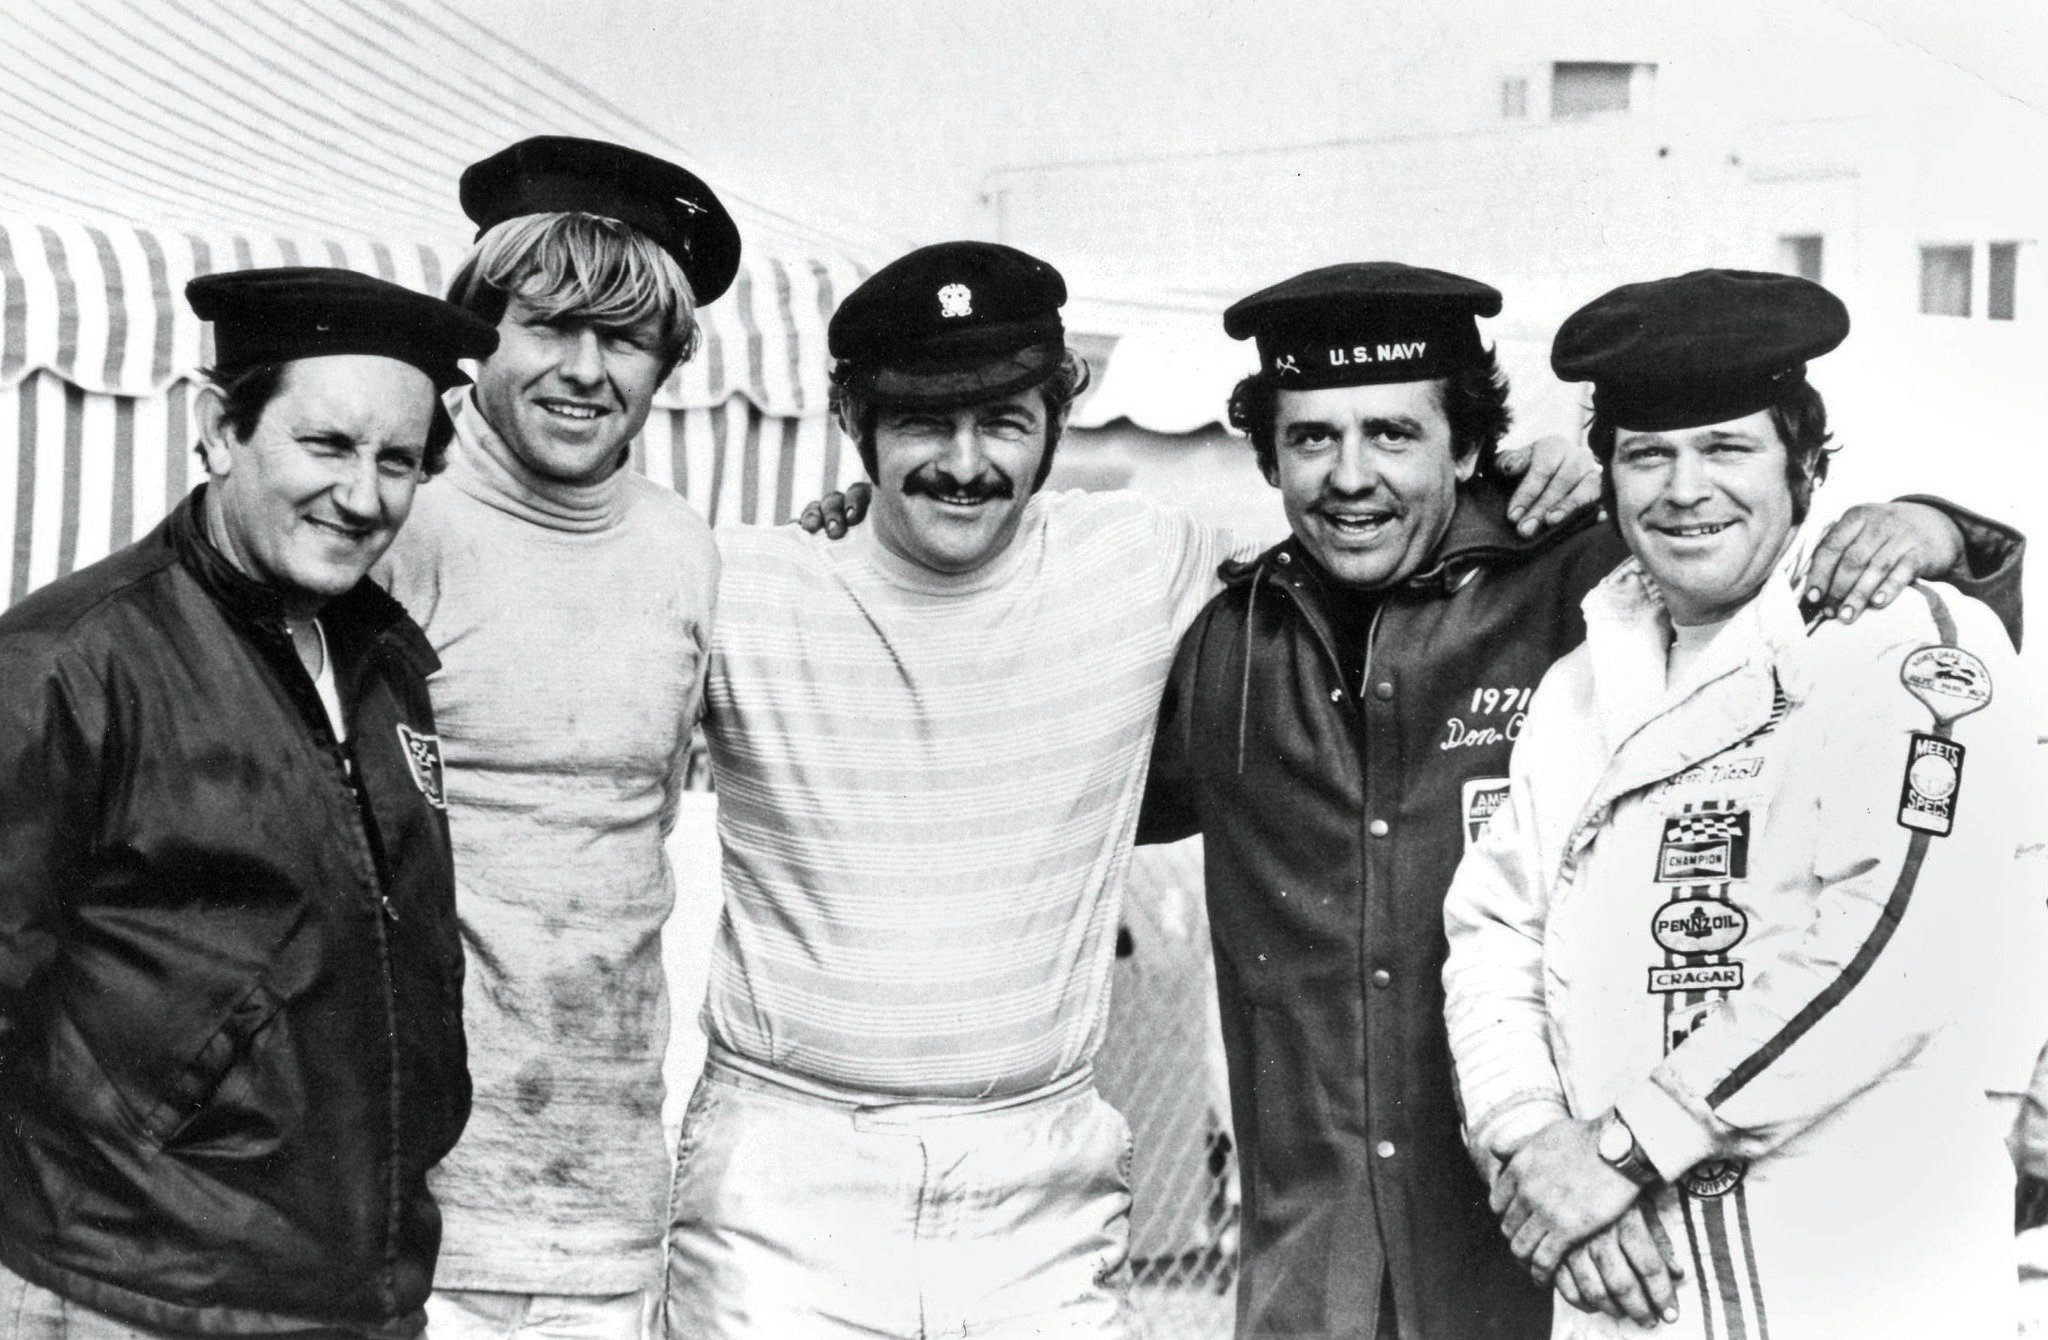 """The Greek Fleet was a close-knit cadre of Top Fuel racers who often appeared together. Karamesines, the Rear Admiral, assigned ranks based on performance or whimsy, as it suited him. Left to right: Bob Creitz, """"Kansas"""" John Wiebe, Chris """"The Greek"""" Karamesines, Don """"Mad Dog"""" Cook, and Jim Nicoll."""